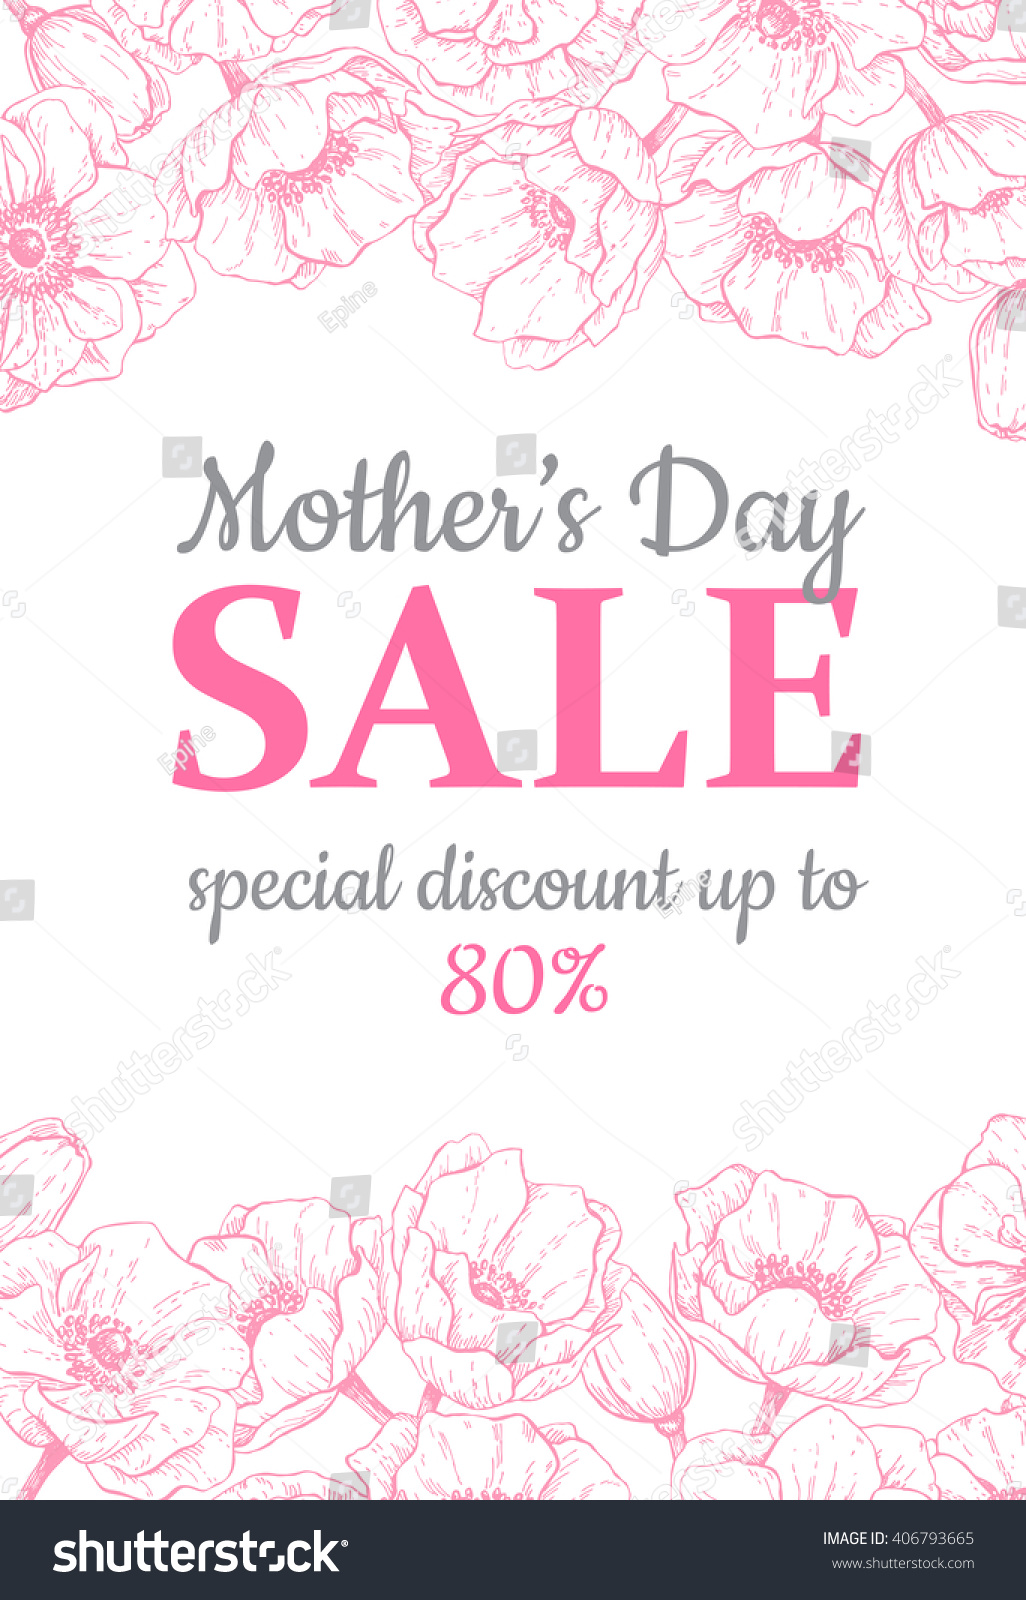 Mothers Day Sale Illustration Detailed Flower Stock Vector 406793665 ...